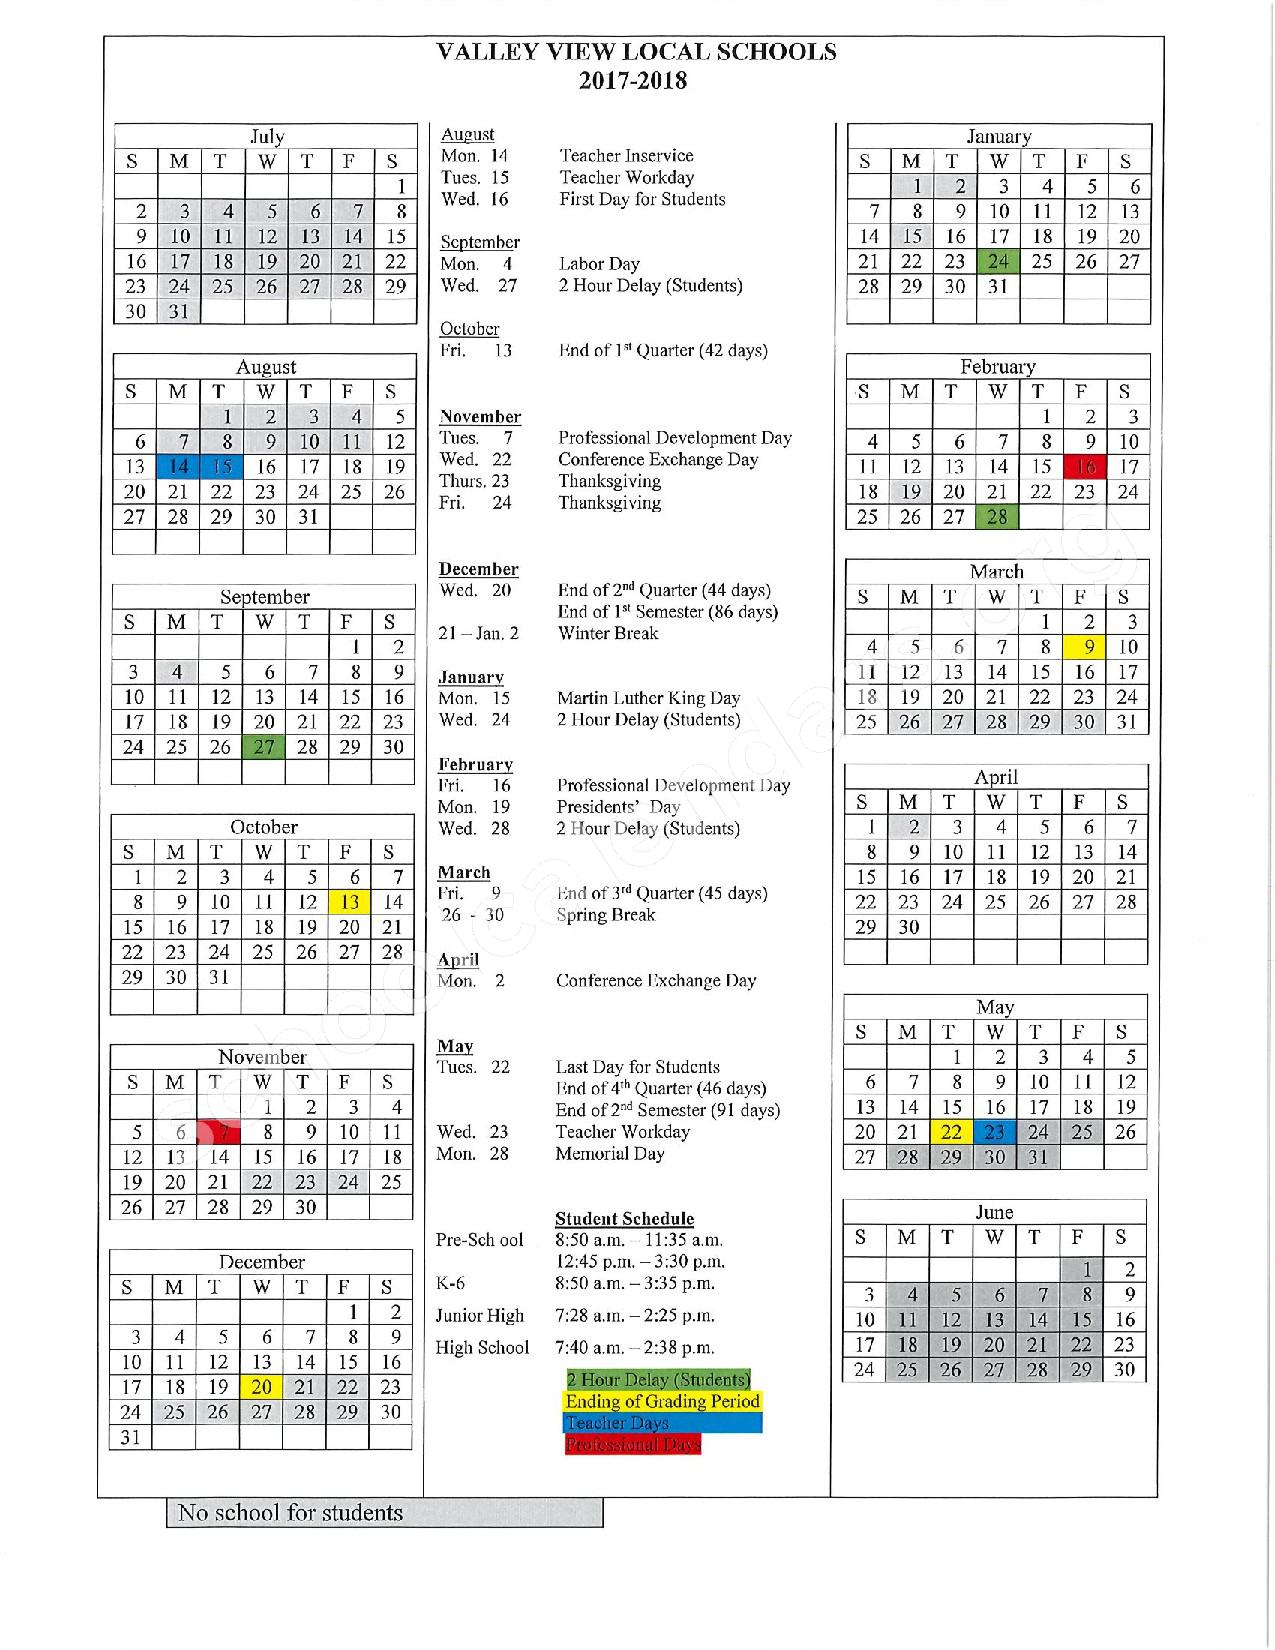 2017 - 2018 District Calendar – Valley View Local Schools – page 1